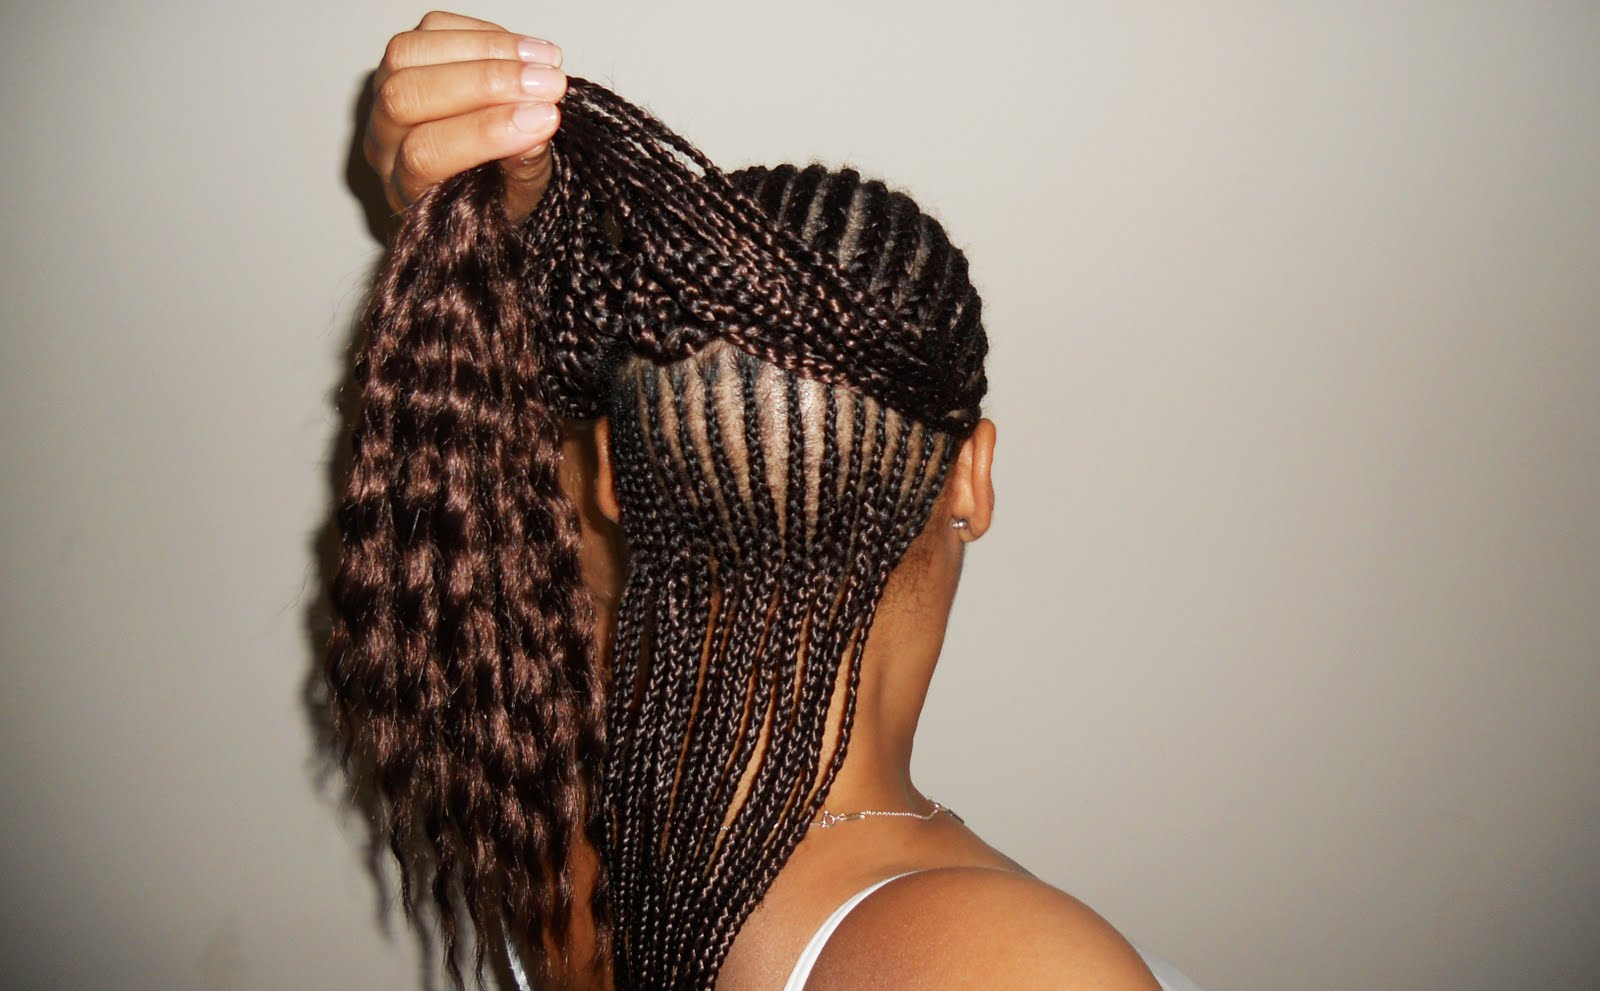 1l TWO-LAYER BRAIDS (ANY DESIGN